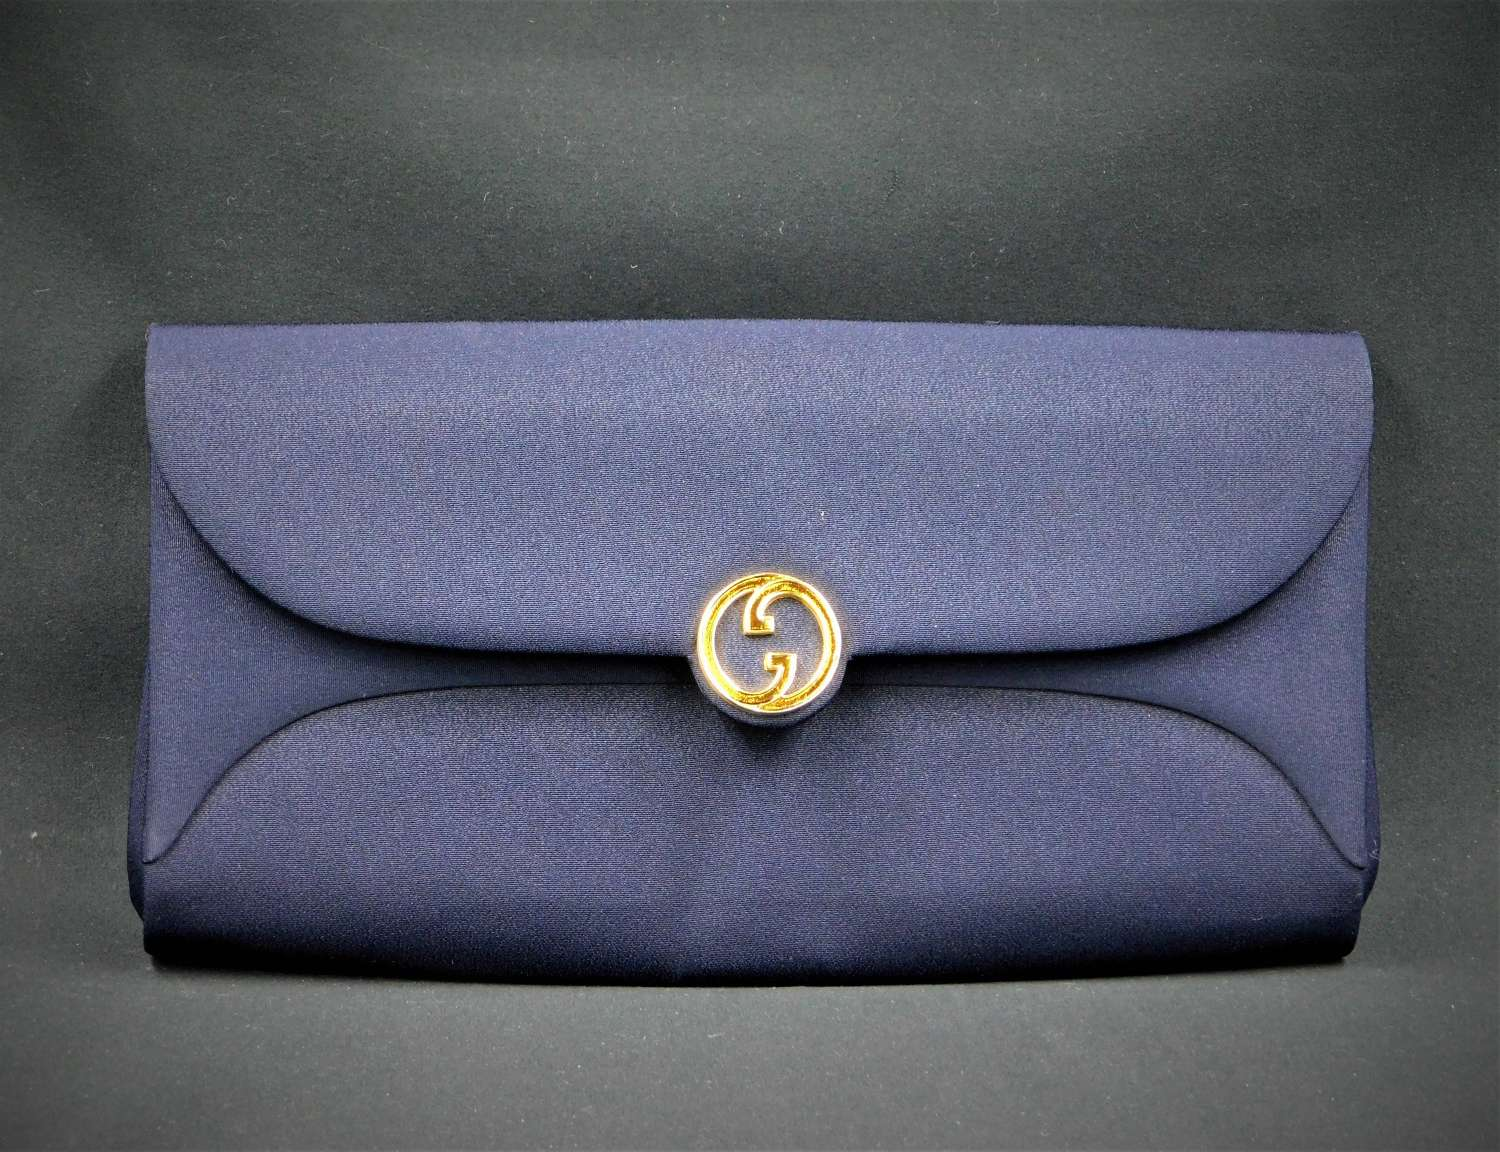 Vintage Gucci Fabric Clutch Bag